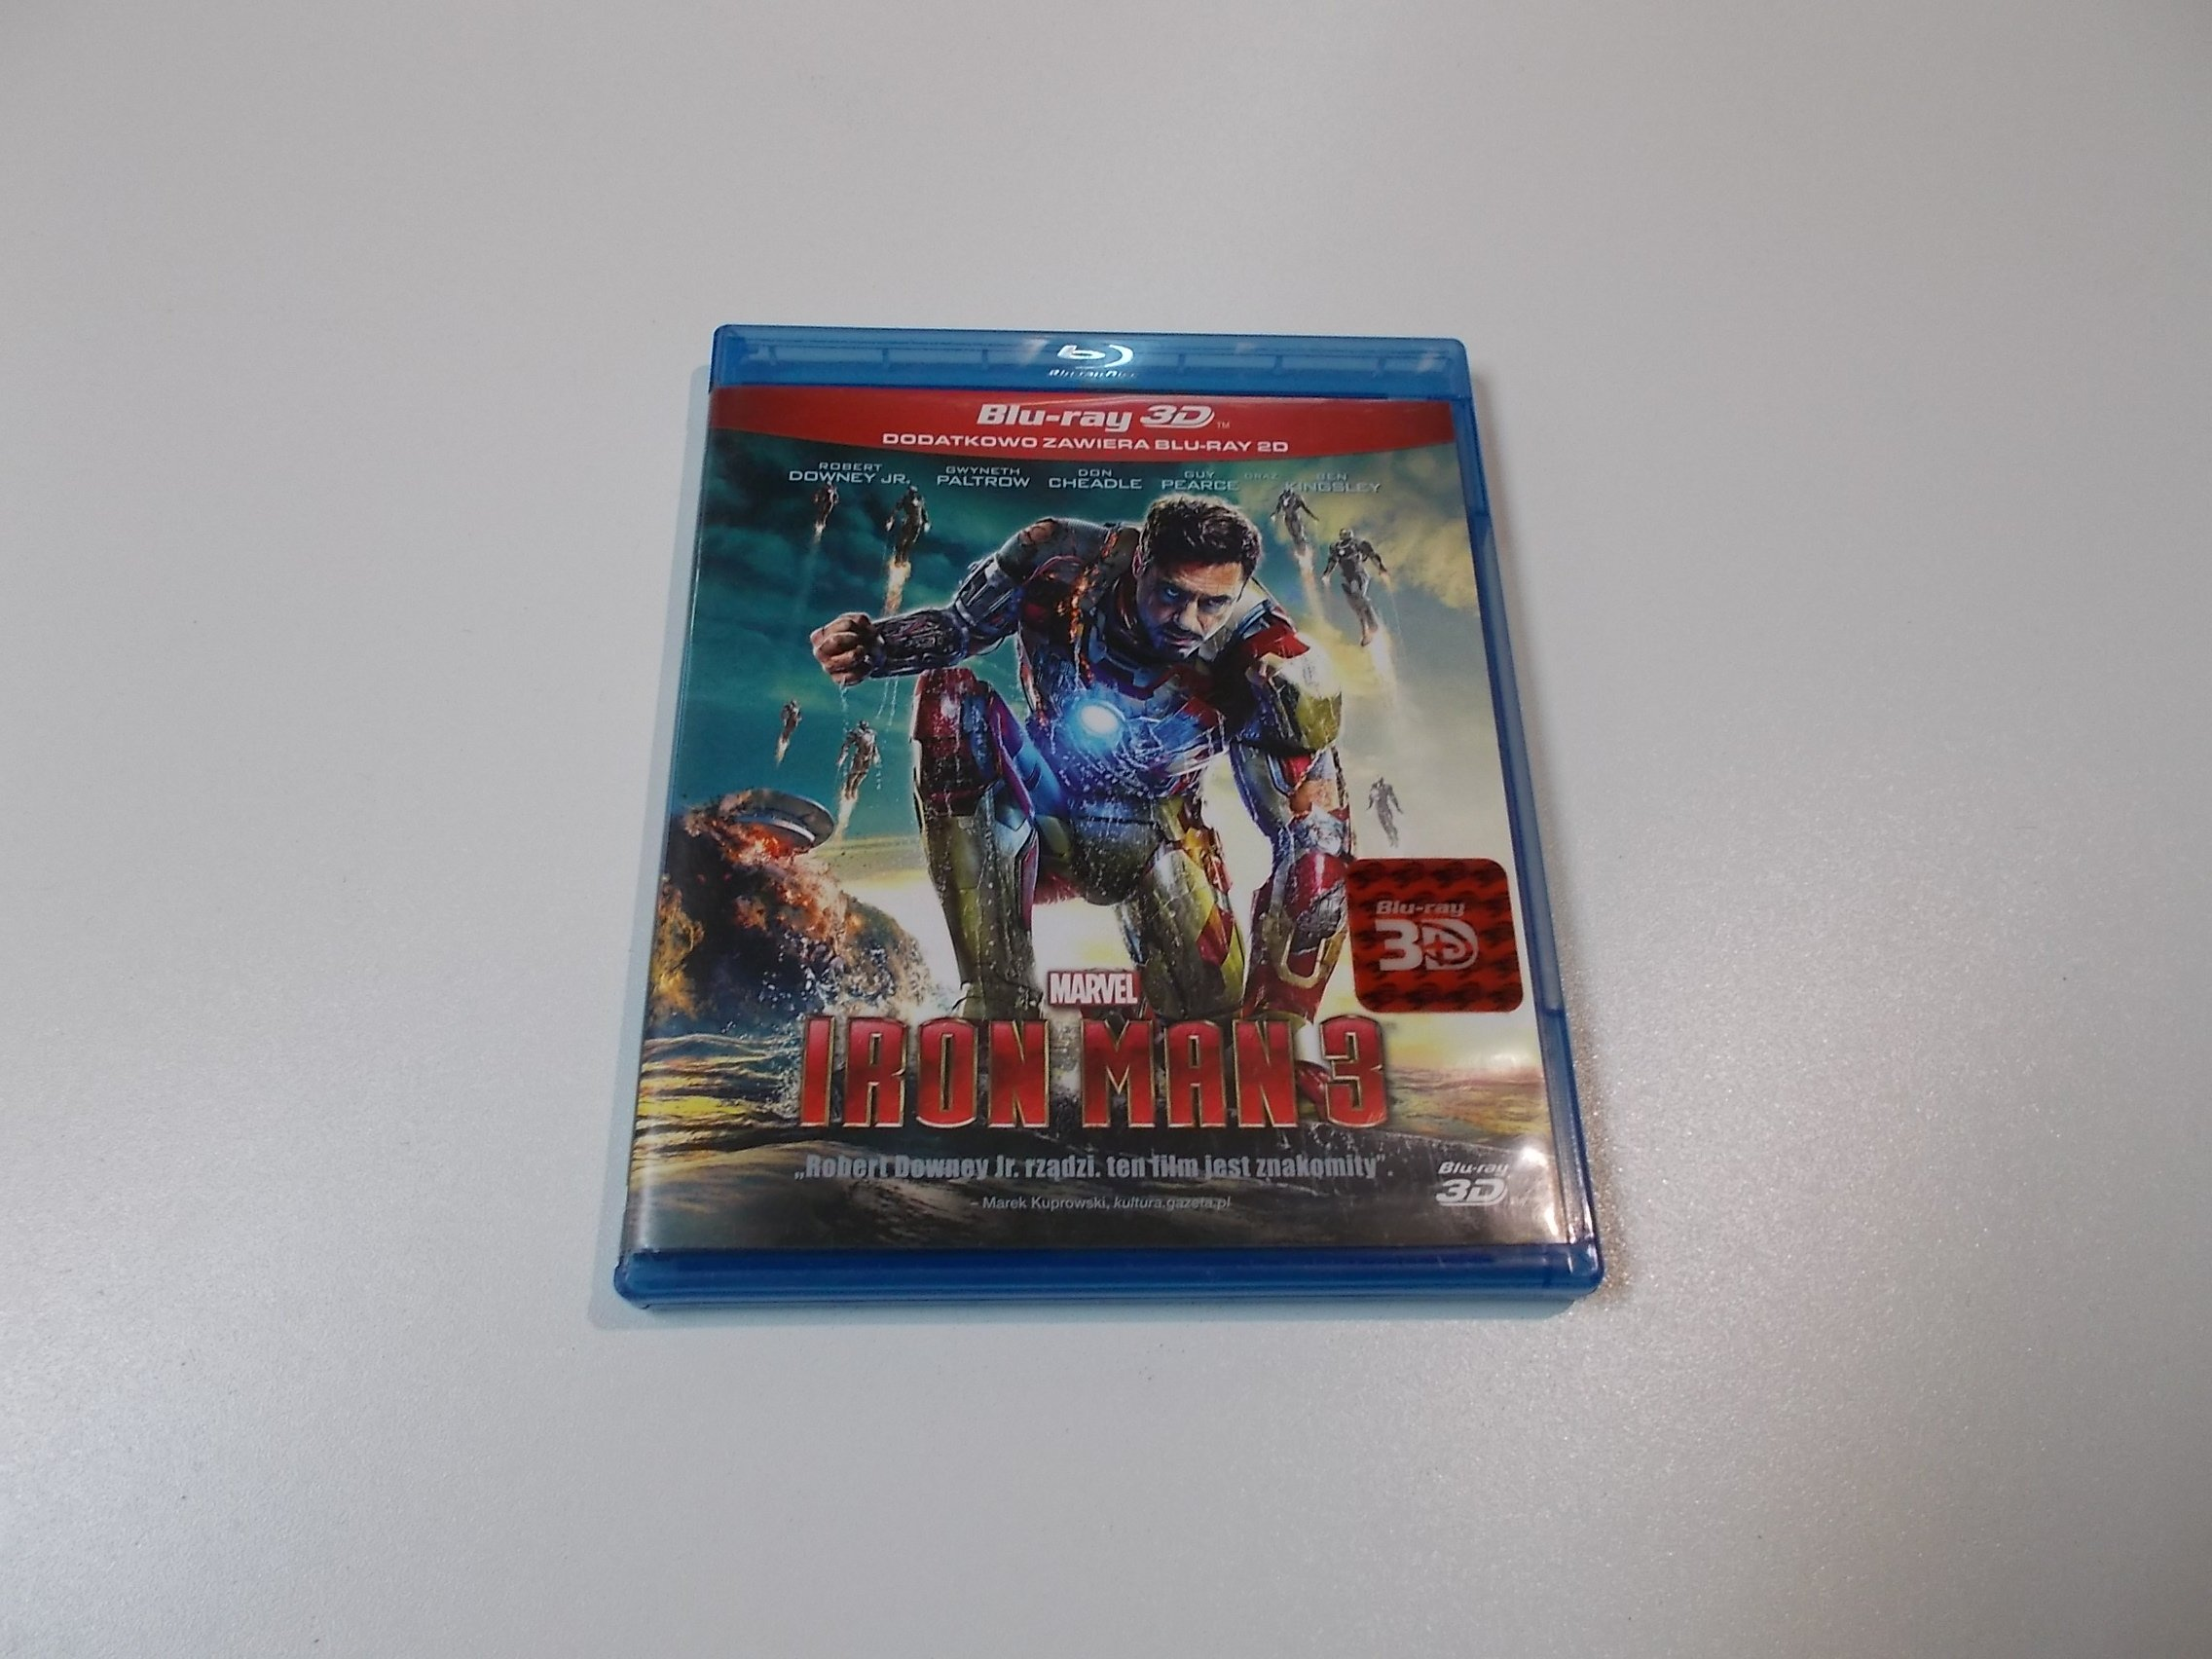 IRON MAN 3 MARVEL - Blu-ray 3D - Sklep